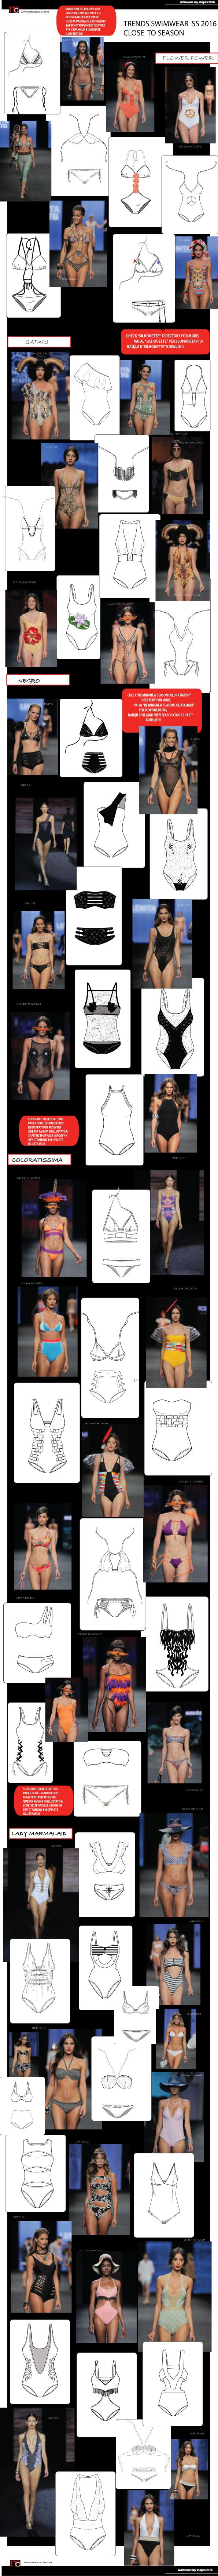 key shapes swimwear SS2016 close to season!!!!with fashion flats, colors and much more!!! only at www.modacable.com, subscribe to our website and receive the free access to the technical drawings 2016-2017!!!